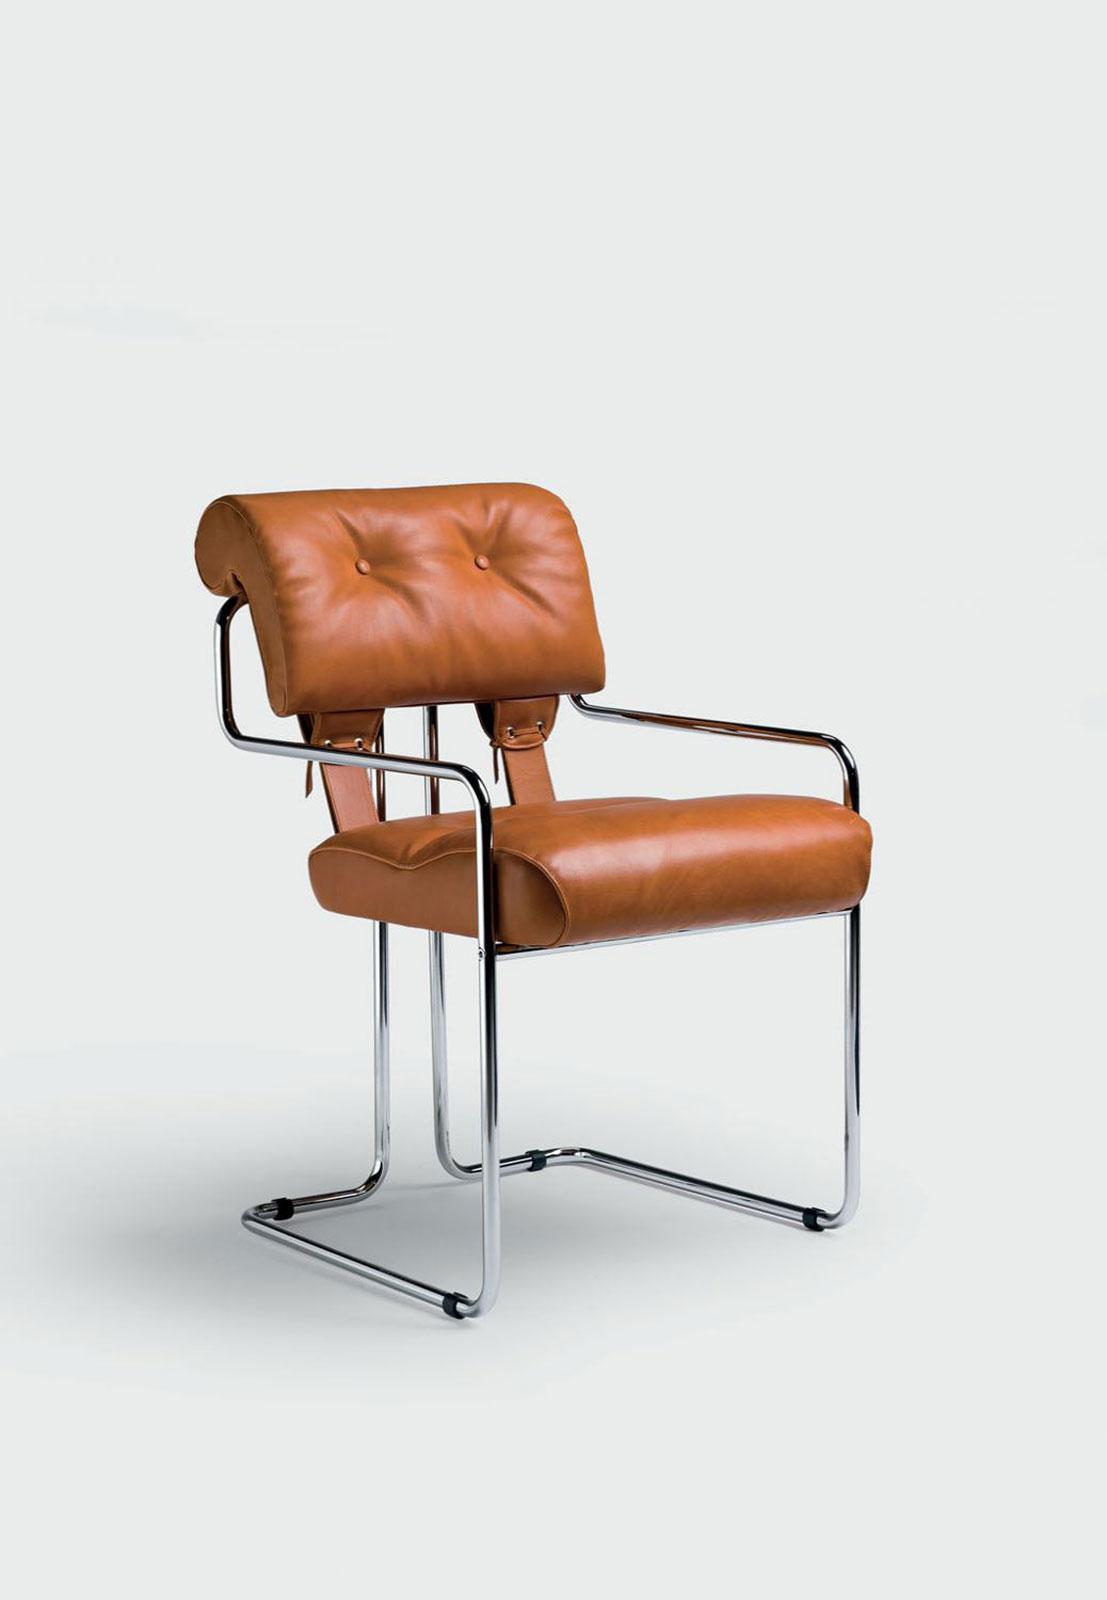 modern office chair leather. Chair Guido Faleschini Leather Modern Office Furniture Online Stores Shops Delivery Sale Home House Italia Makers U